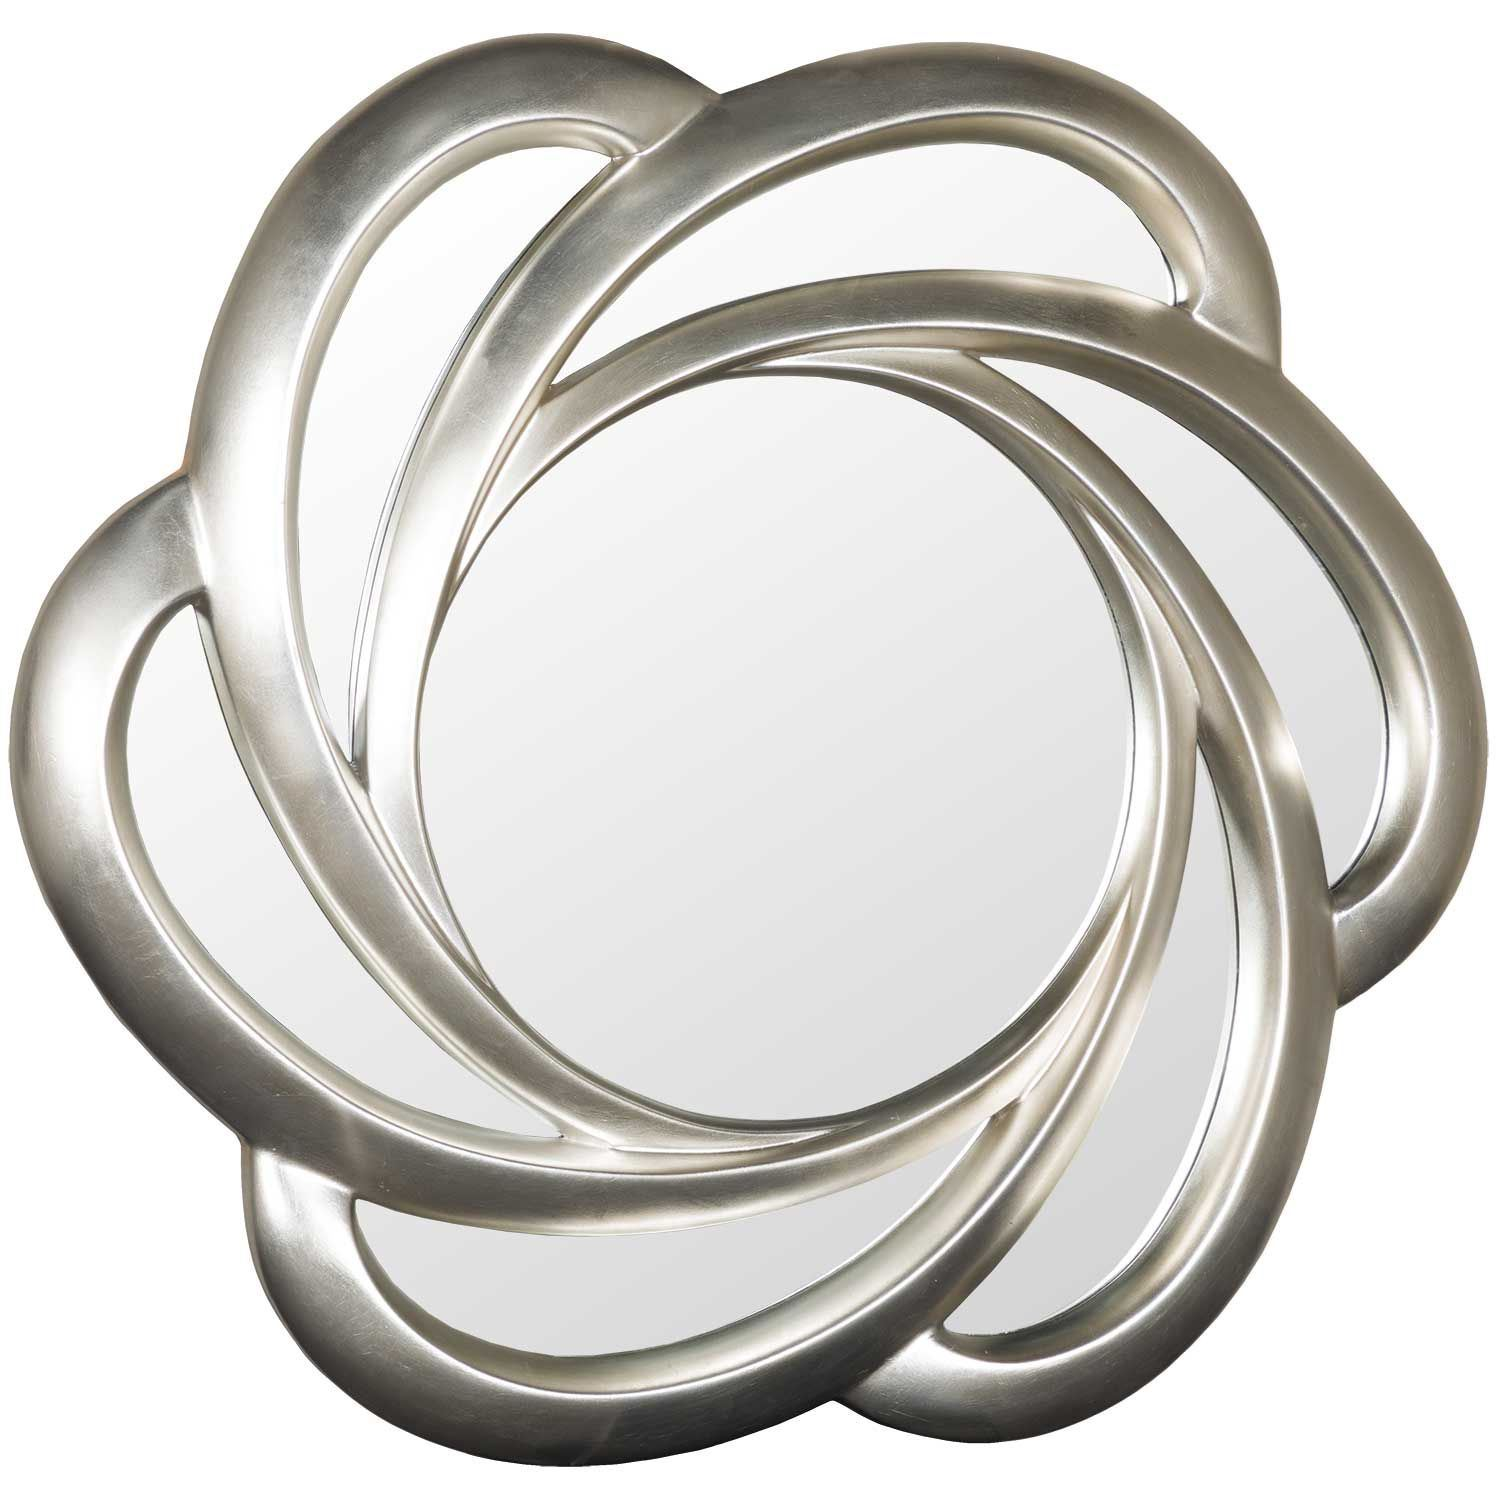 Picture of Swirled Silver Wall Mirror